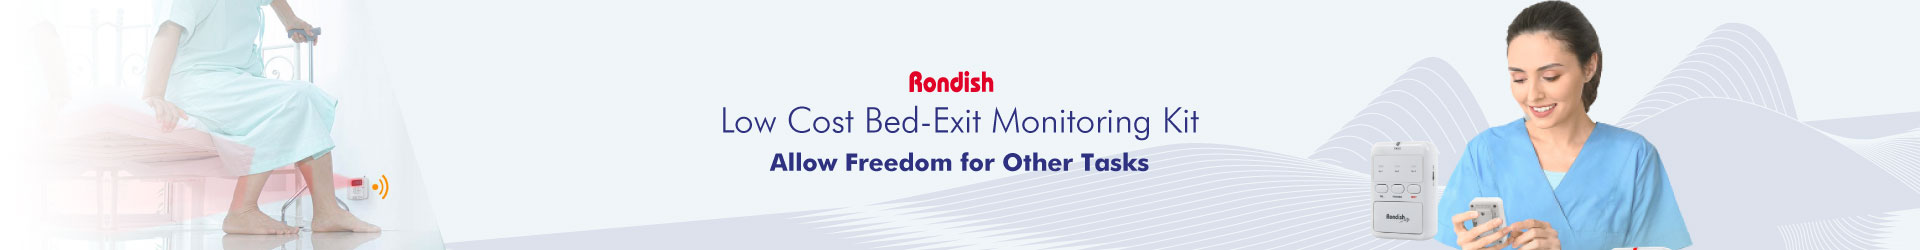 AlessaOnline-Low-Cost-Bed-Exit-Monitoring-Kit-EN